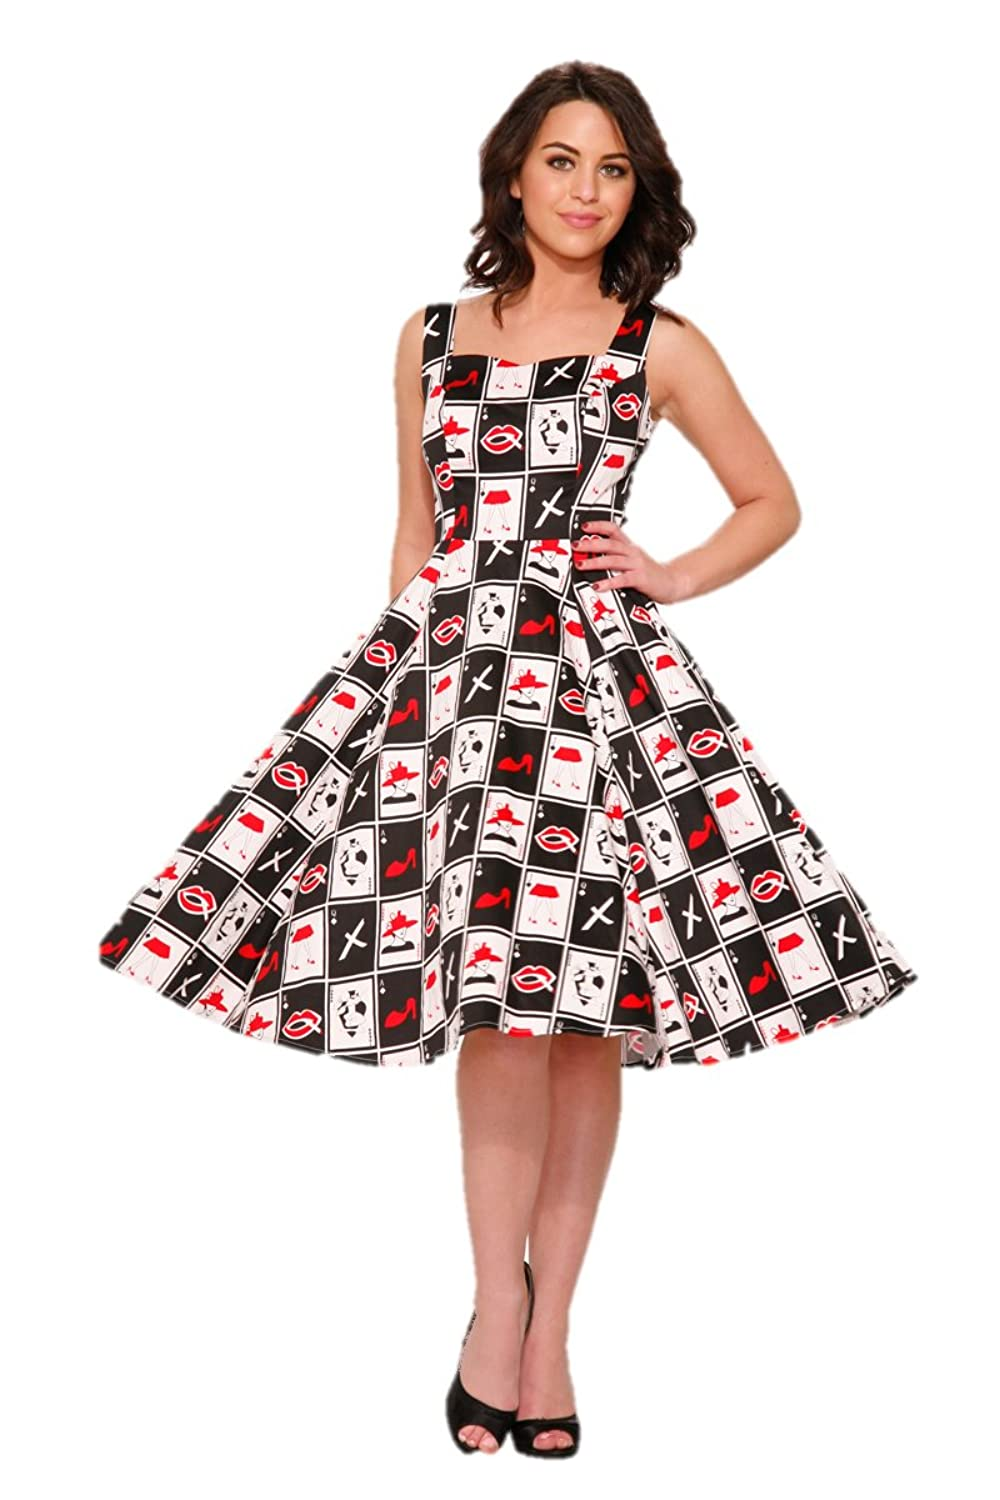 1950s Costumes- Poodle Skirts, Grease, Monroe, Pin Up, I Love Lucy Hearts & Roses Deuces Wild Dress (Shipped from US and US Sizes) $54.88 AT vintagedancer.com